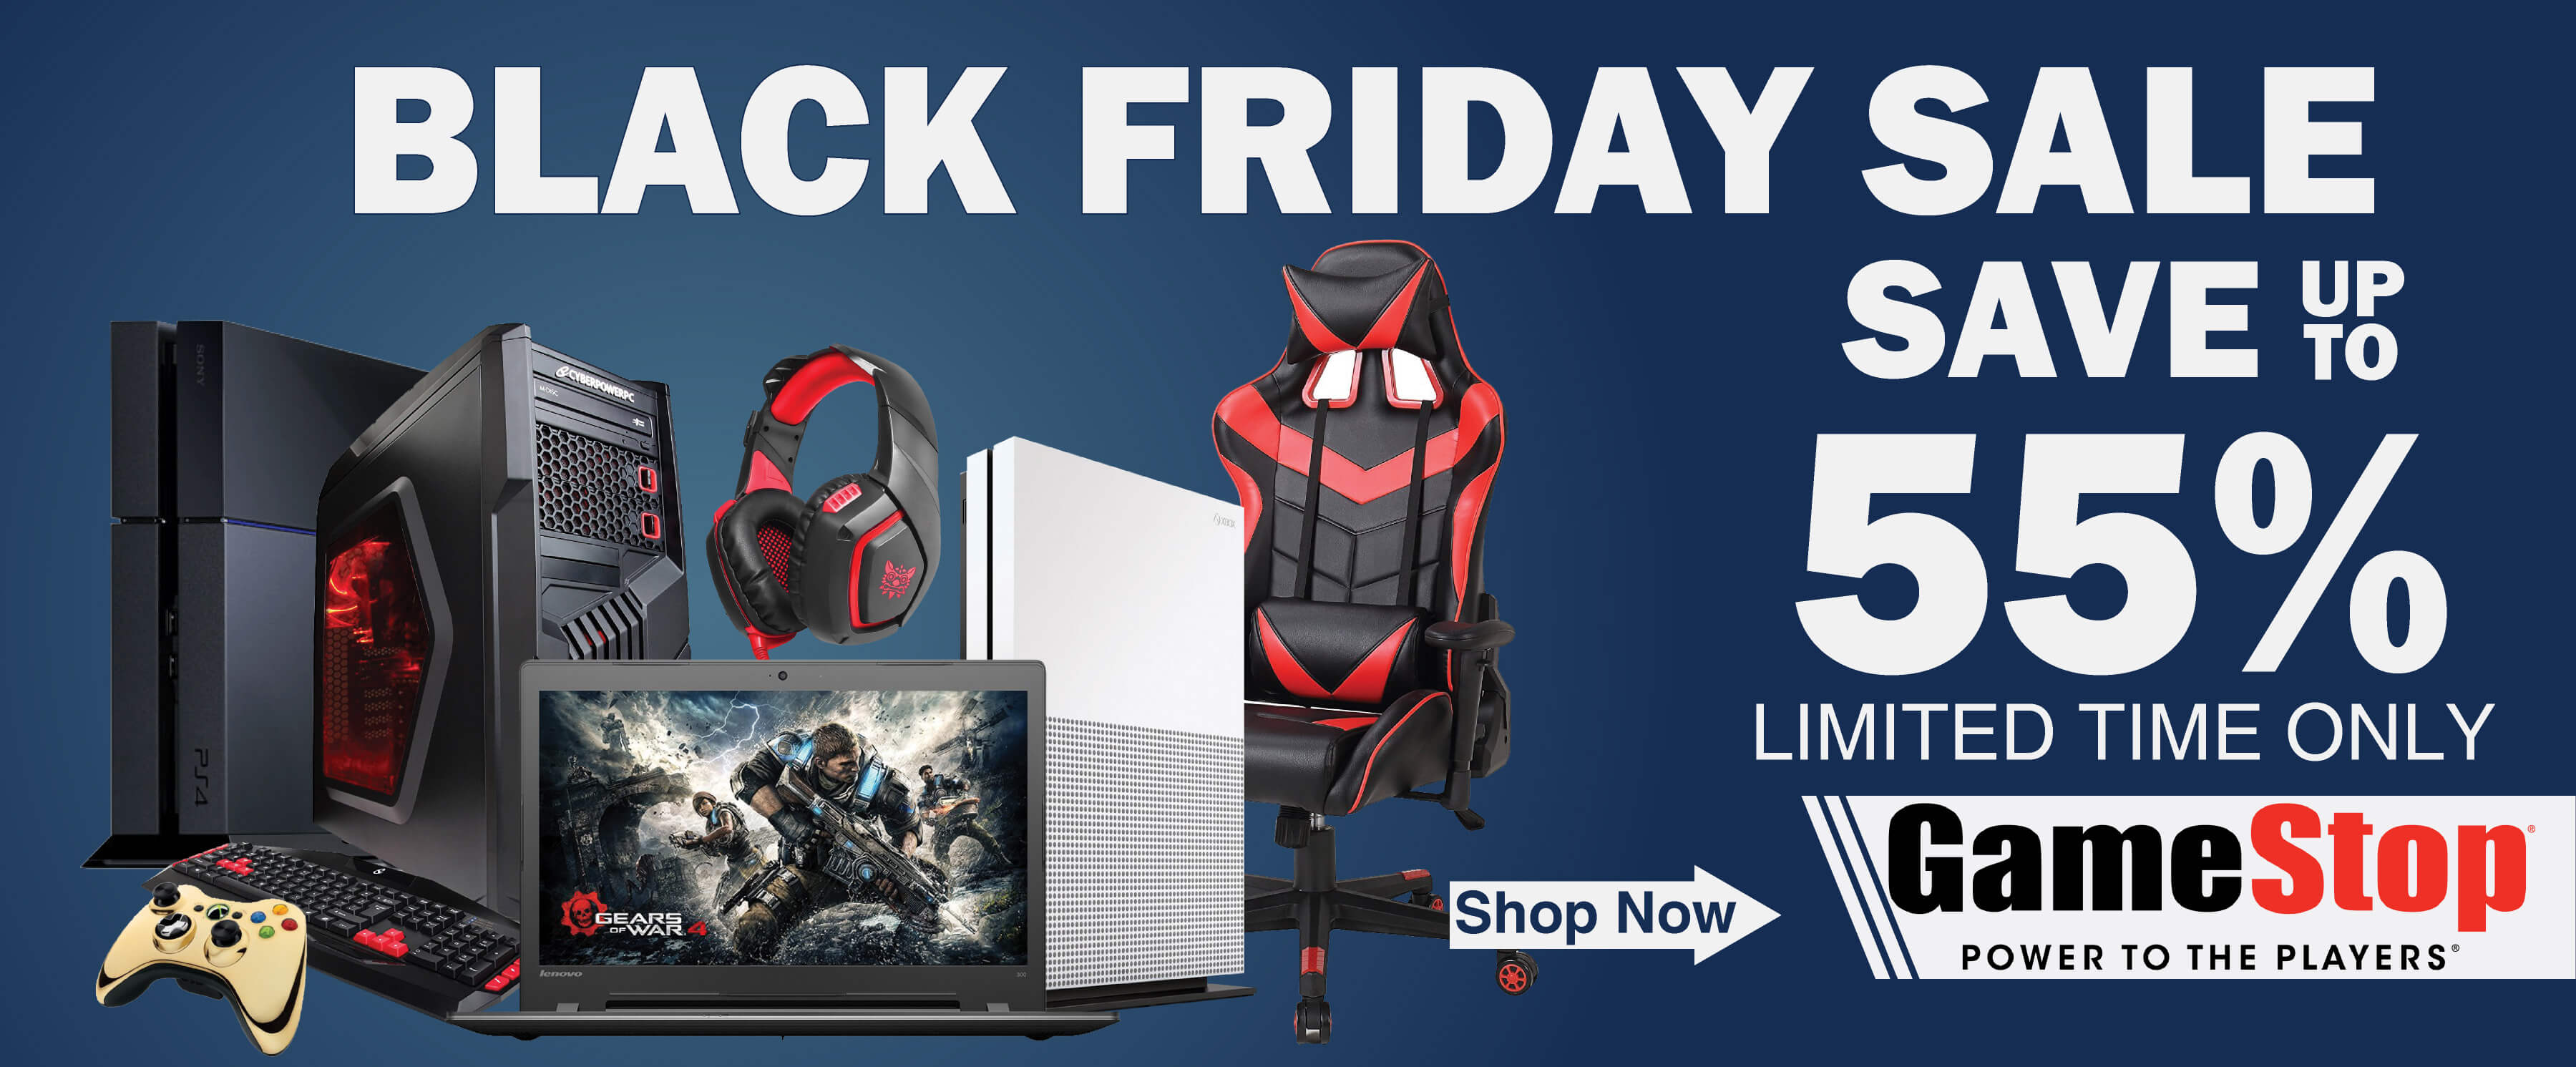 gaming-deals-black-friday-gamestop-offers